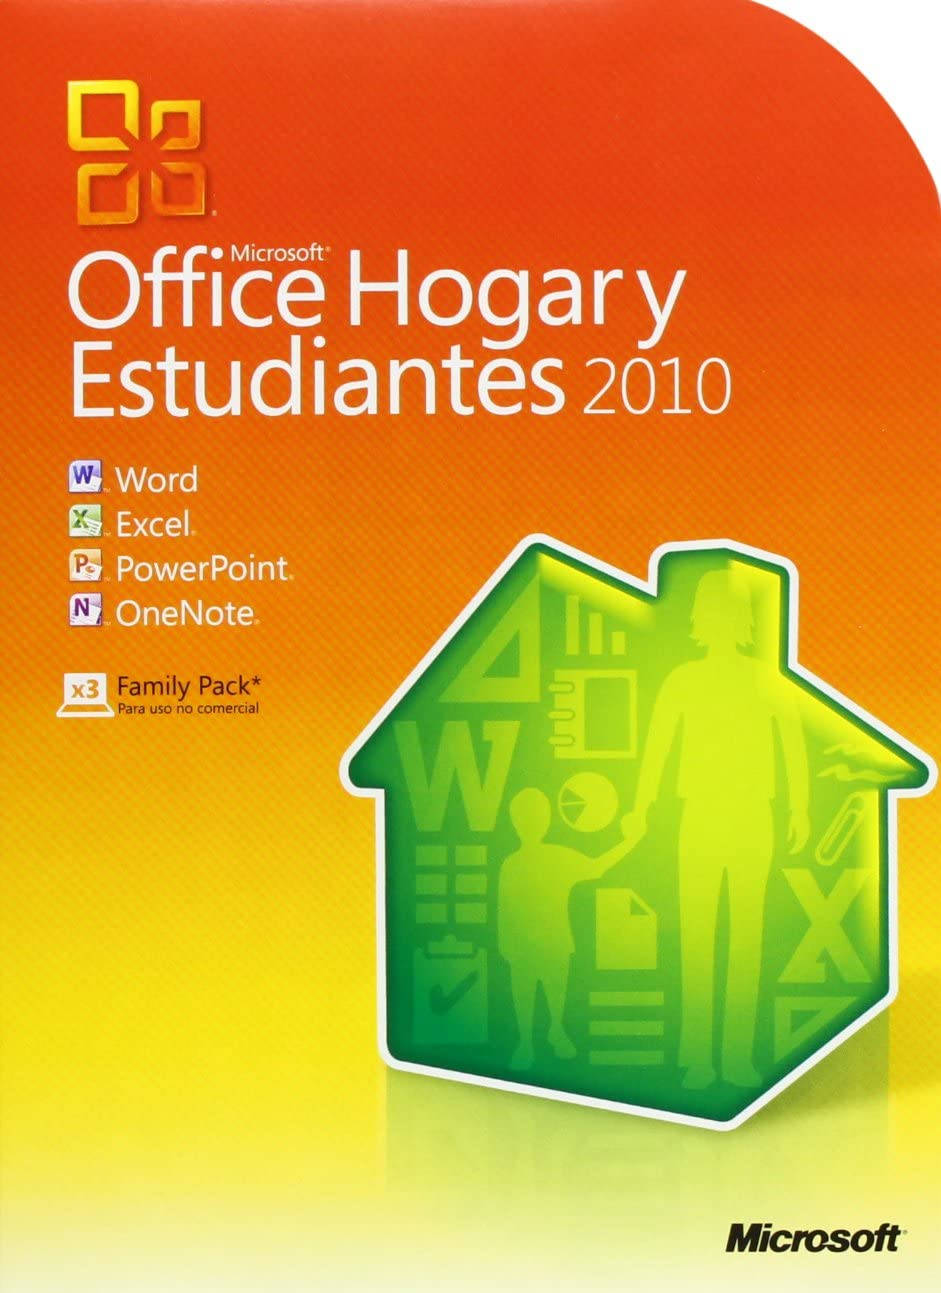 Microsoft Office Hogar y Estudiantes 2010 32-bit/X64 DVD5 para 3PC: Amazon.es: Software